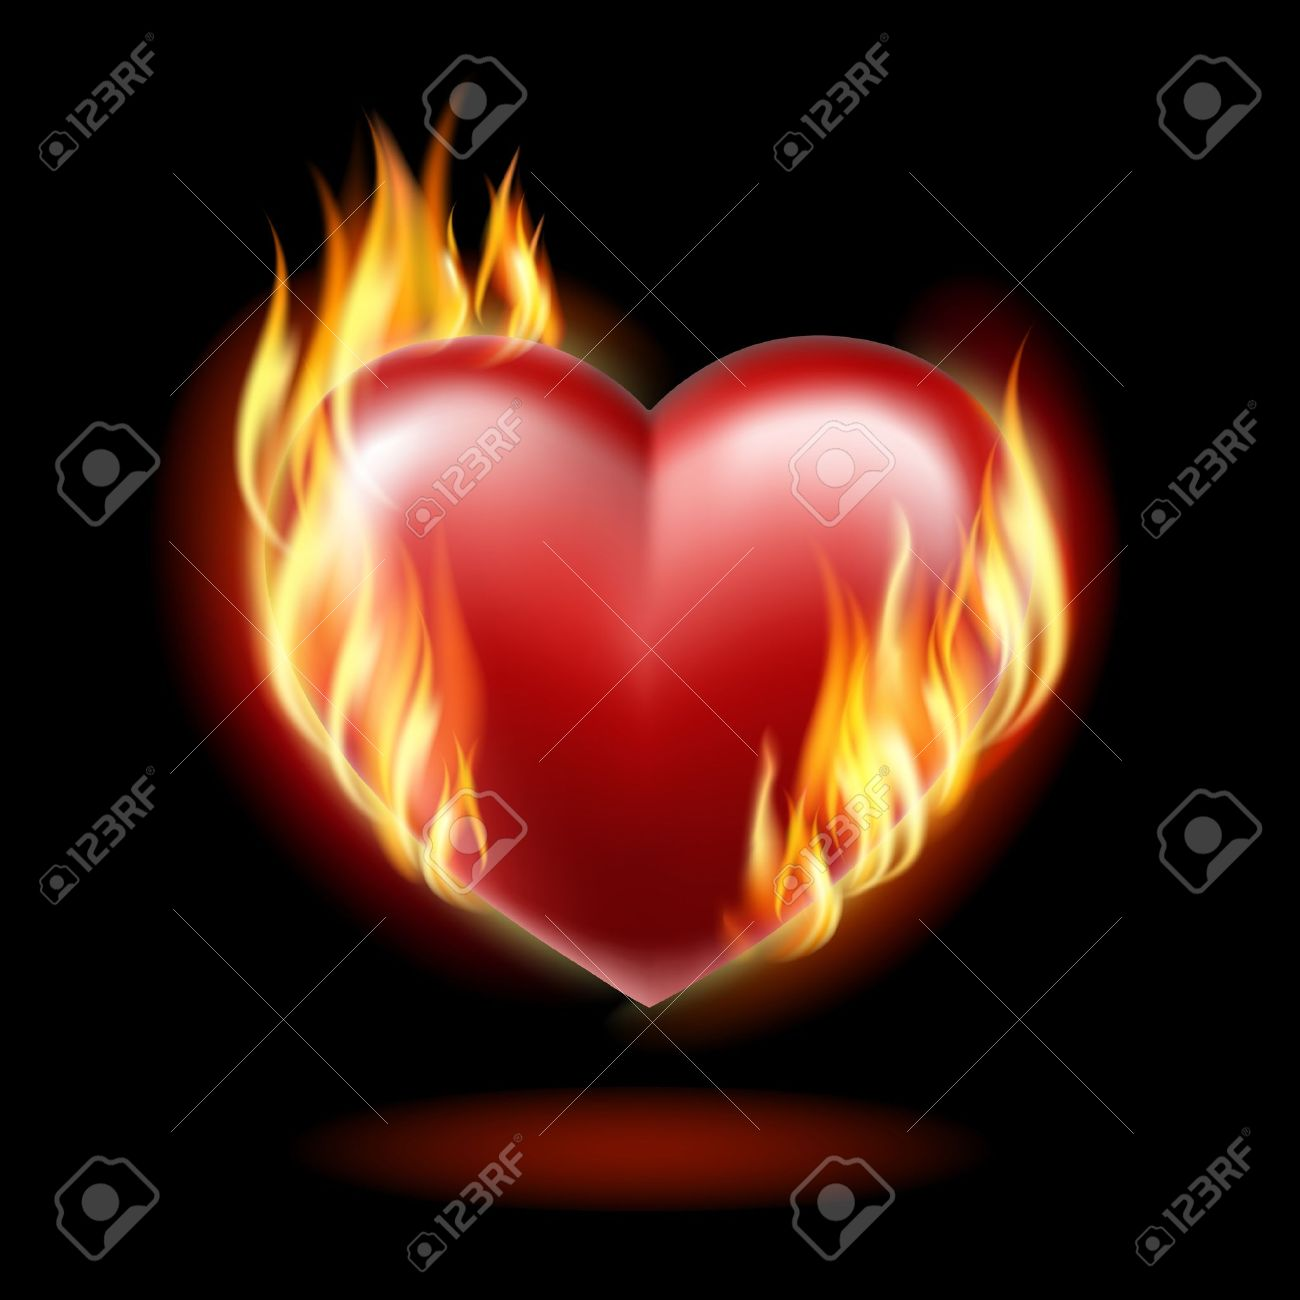 Heart on fire on a black background . - 12182161